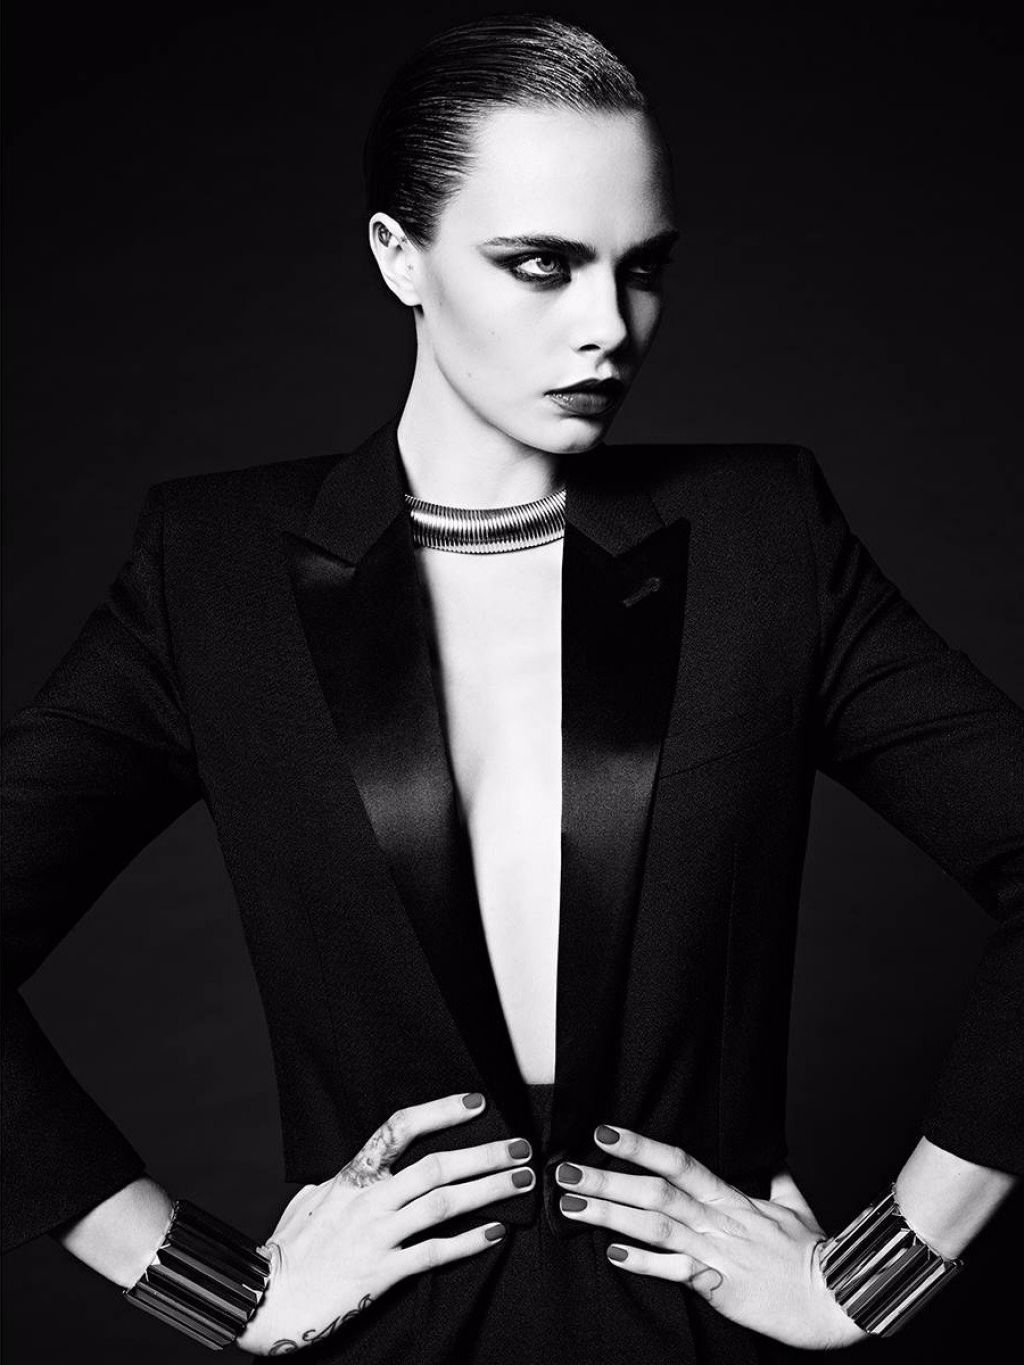 cara delevingne photoshoot for saint laurent 39 le smoking 39 2016. Black Bedroom Furniture Sets. Home Design Ideas